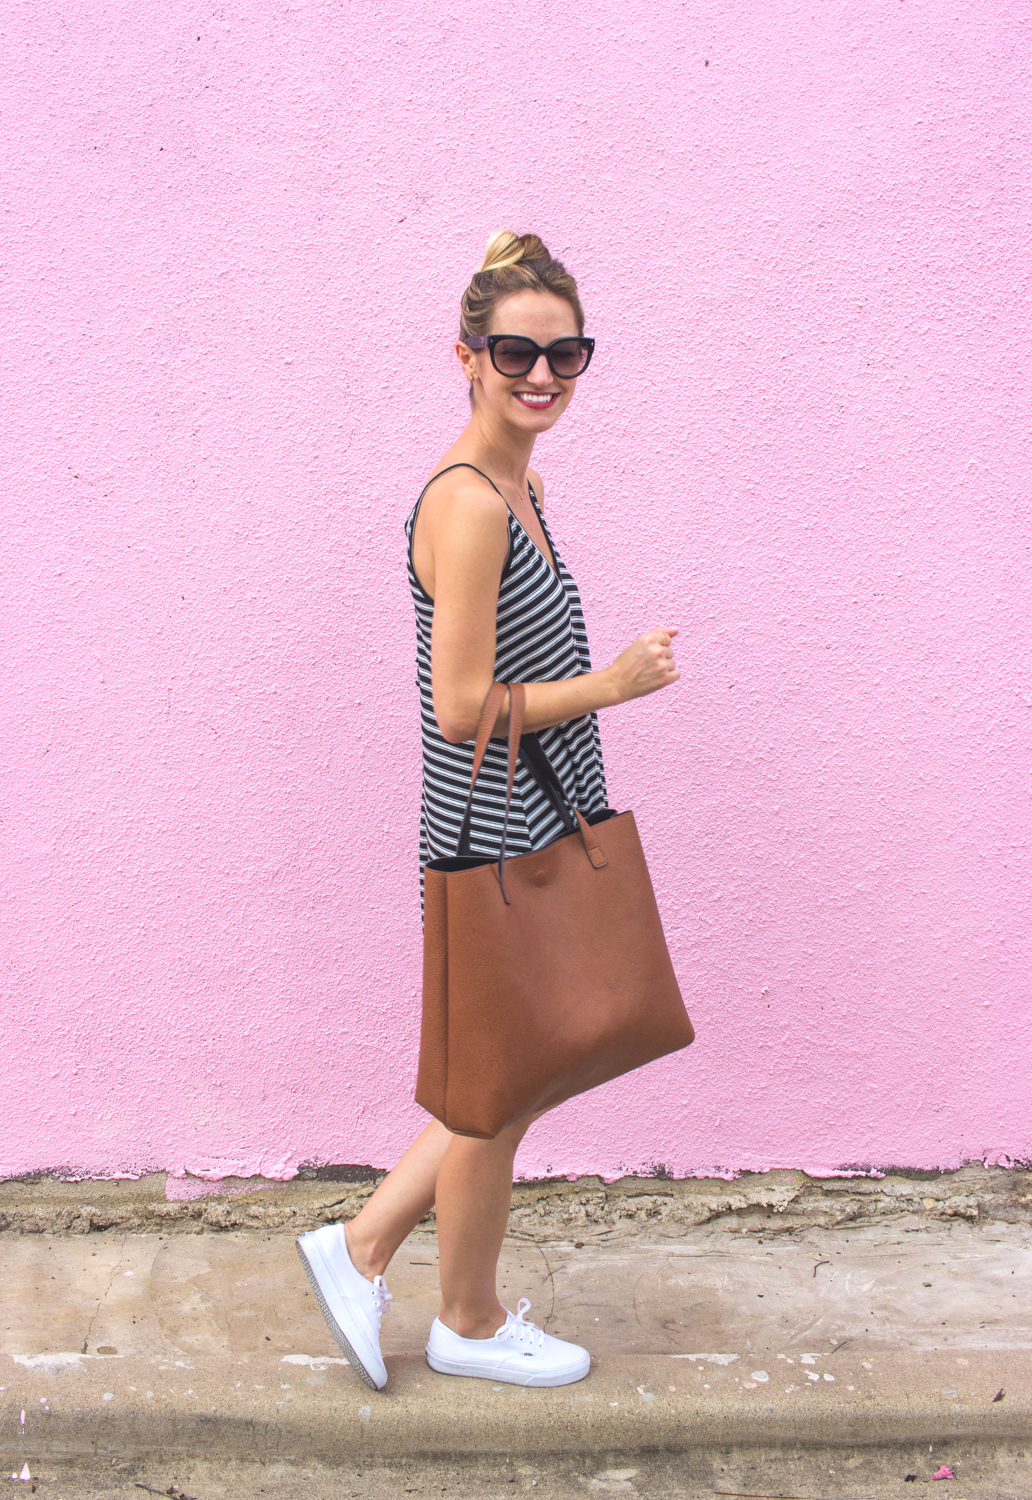 livvyland-blog-olivia-watson-austin-texas-fashion-blogger-pink-wall-coffee-run-summer-lace-up-back-striped-sun-dress-vans-sneakers-3